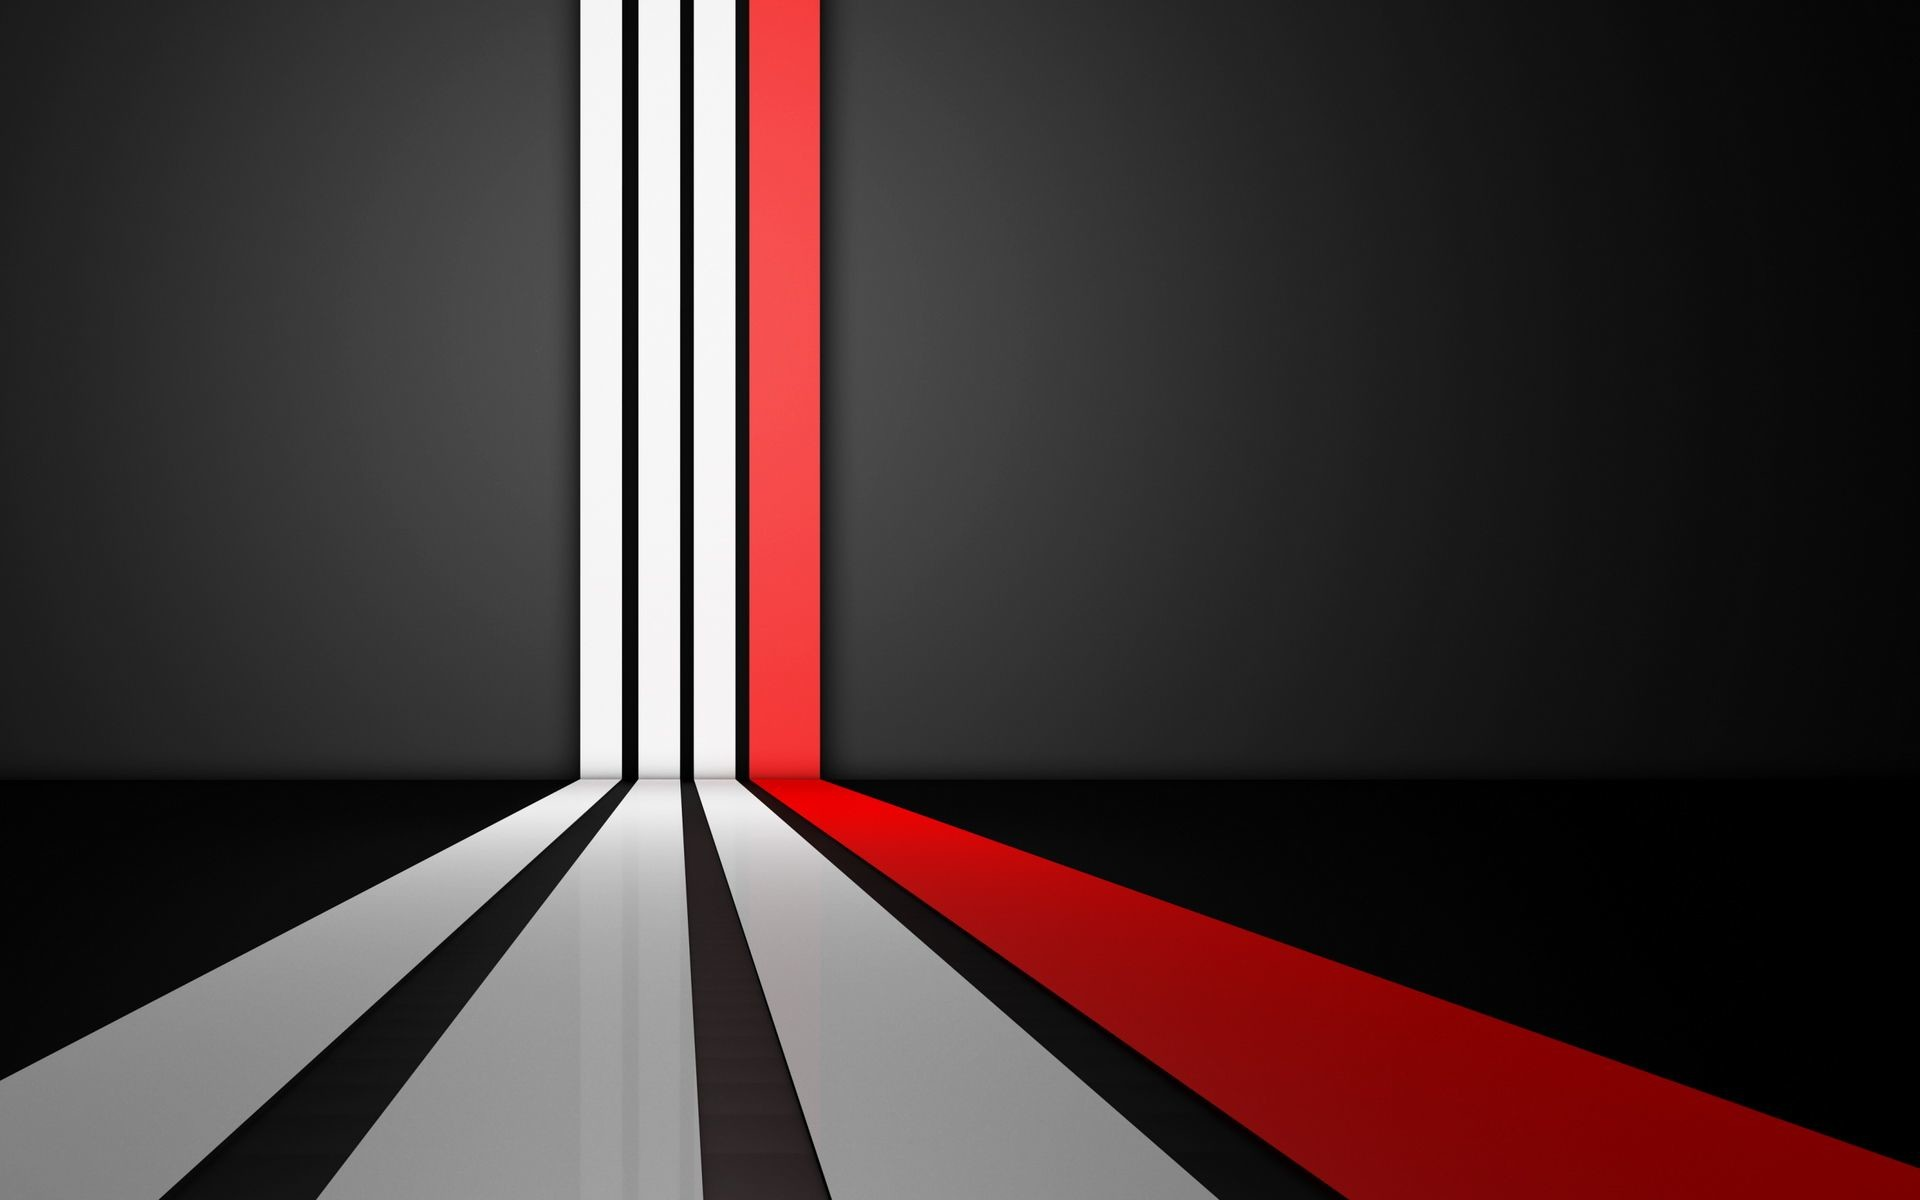 Red White And Black Backgrounds 2 Cool Hd Wallpaper .